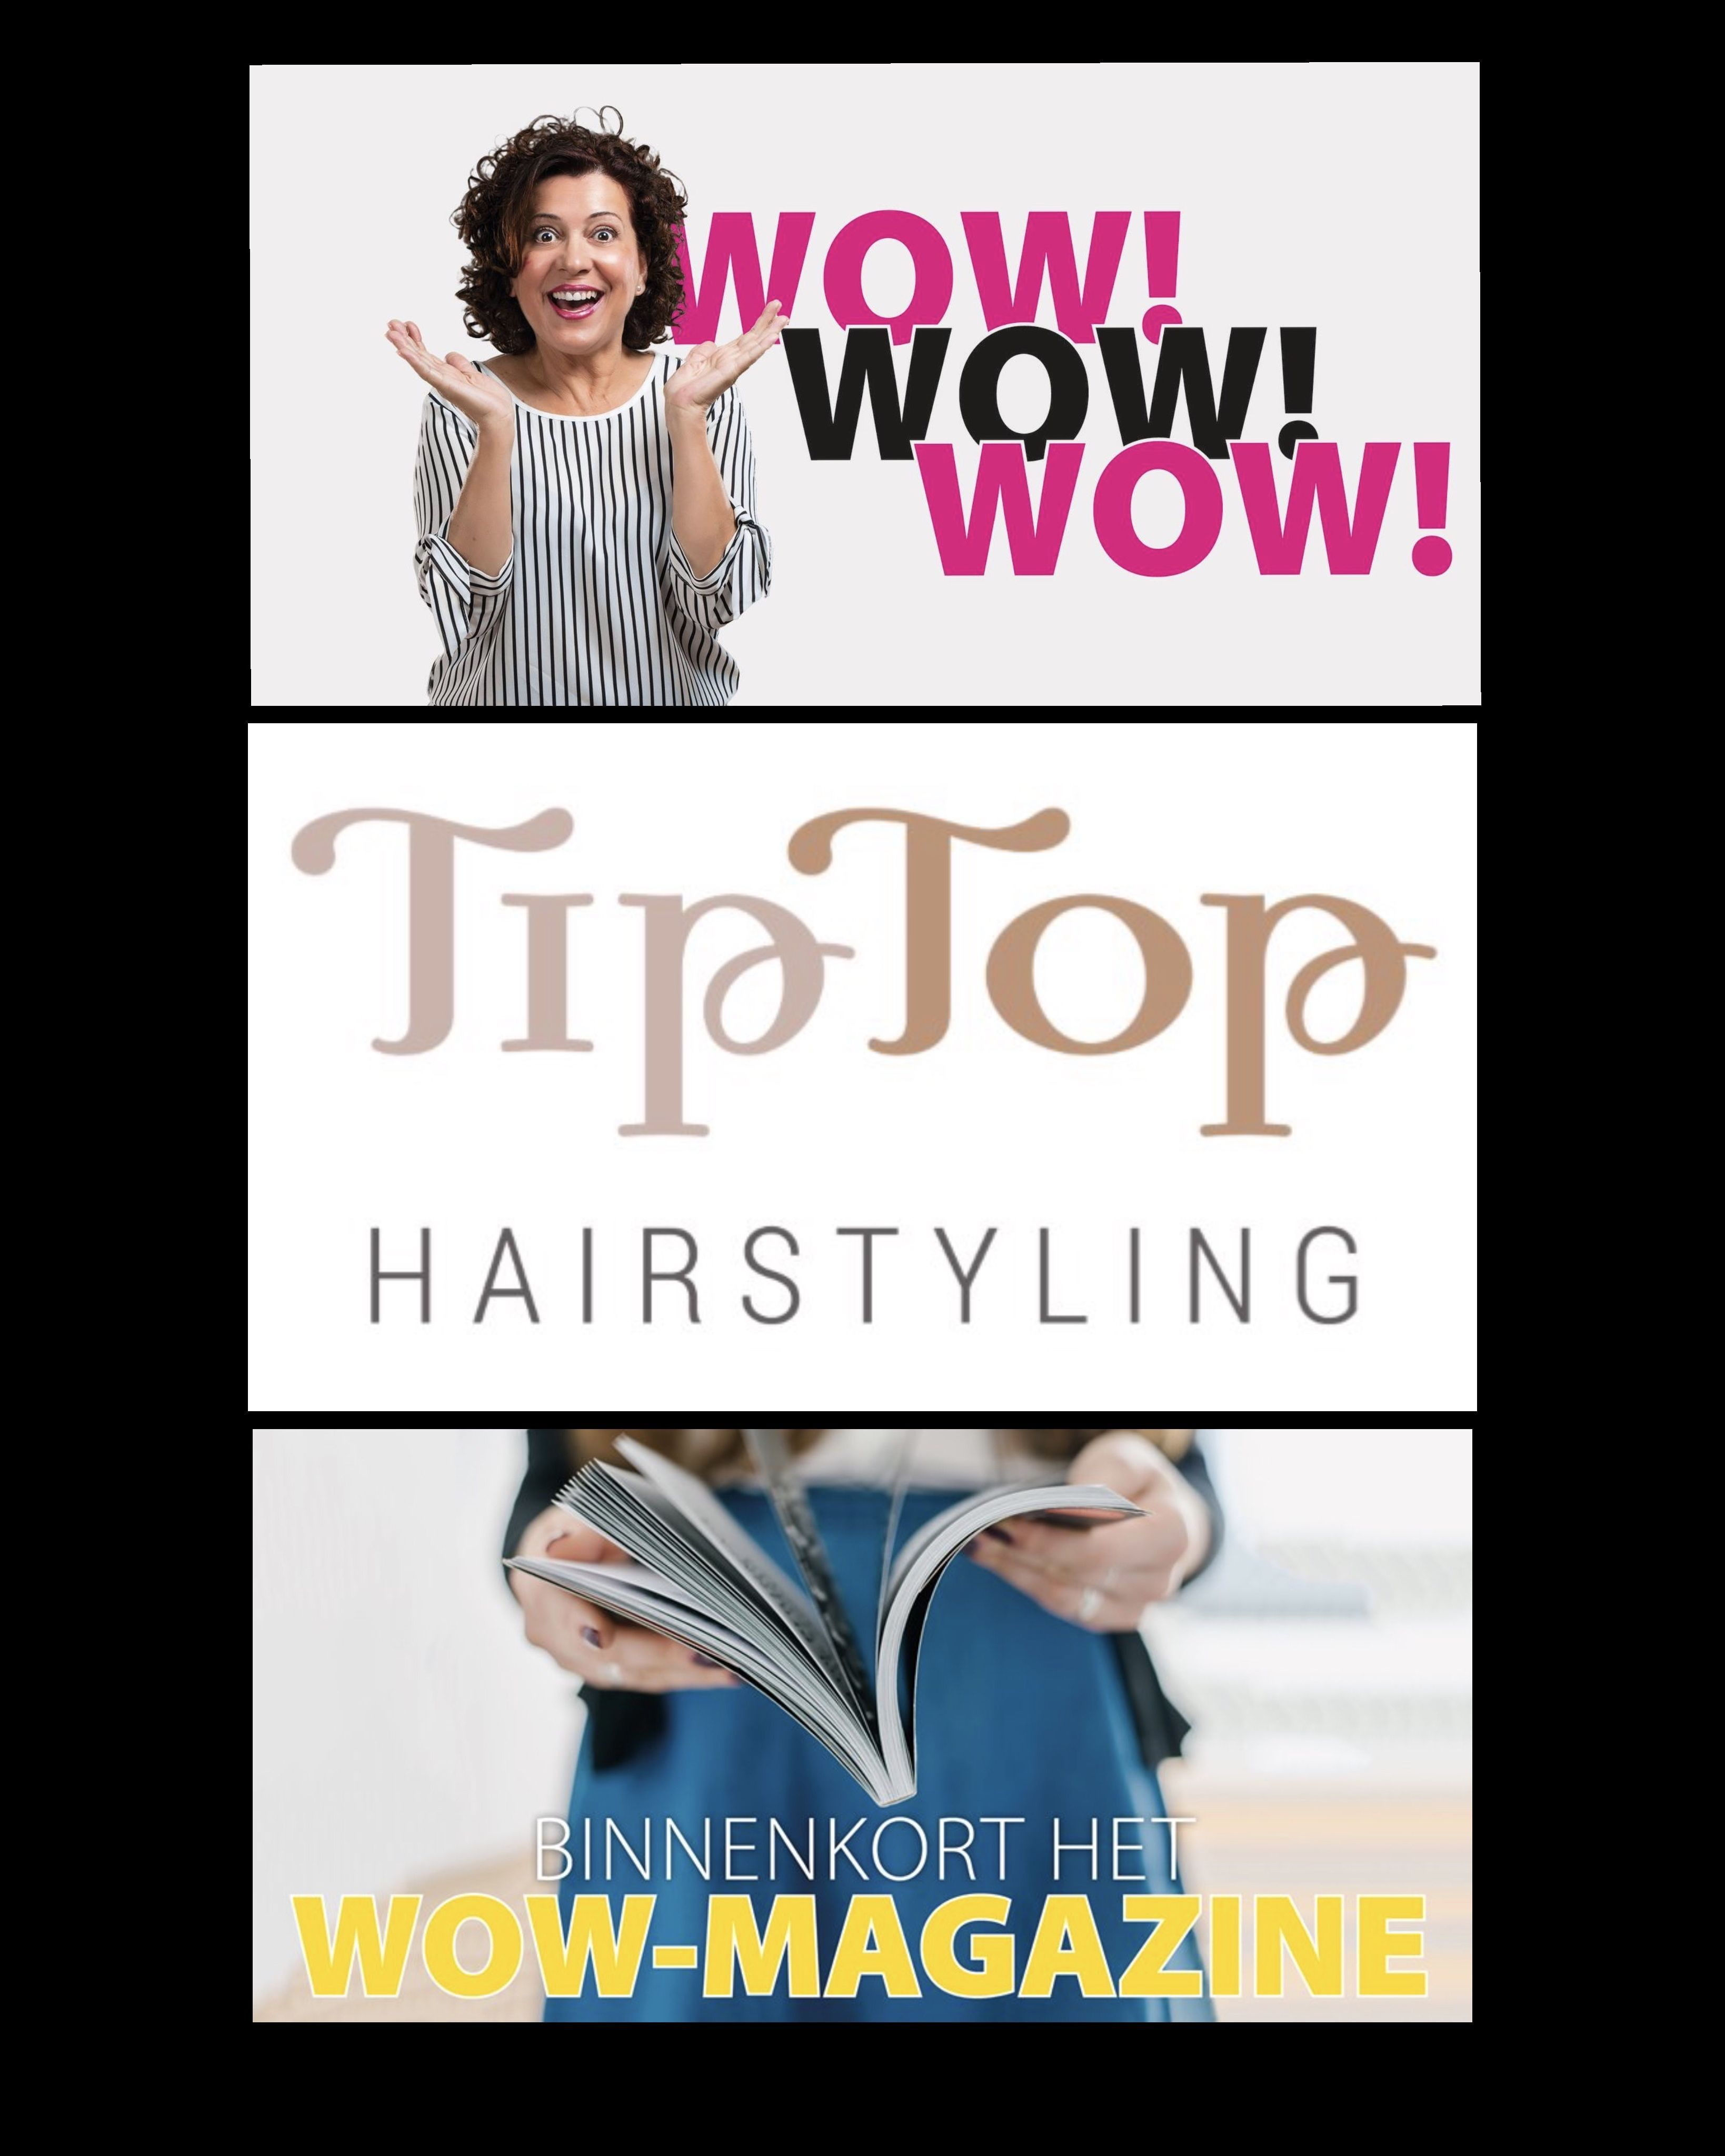 WOW magazine TipTop Hairstyling